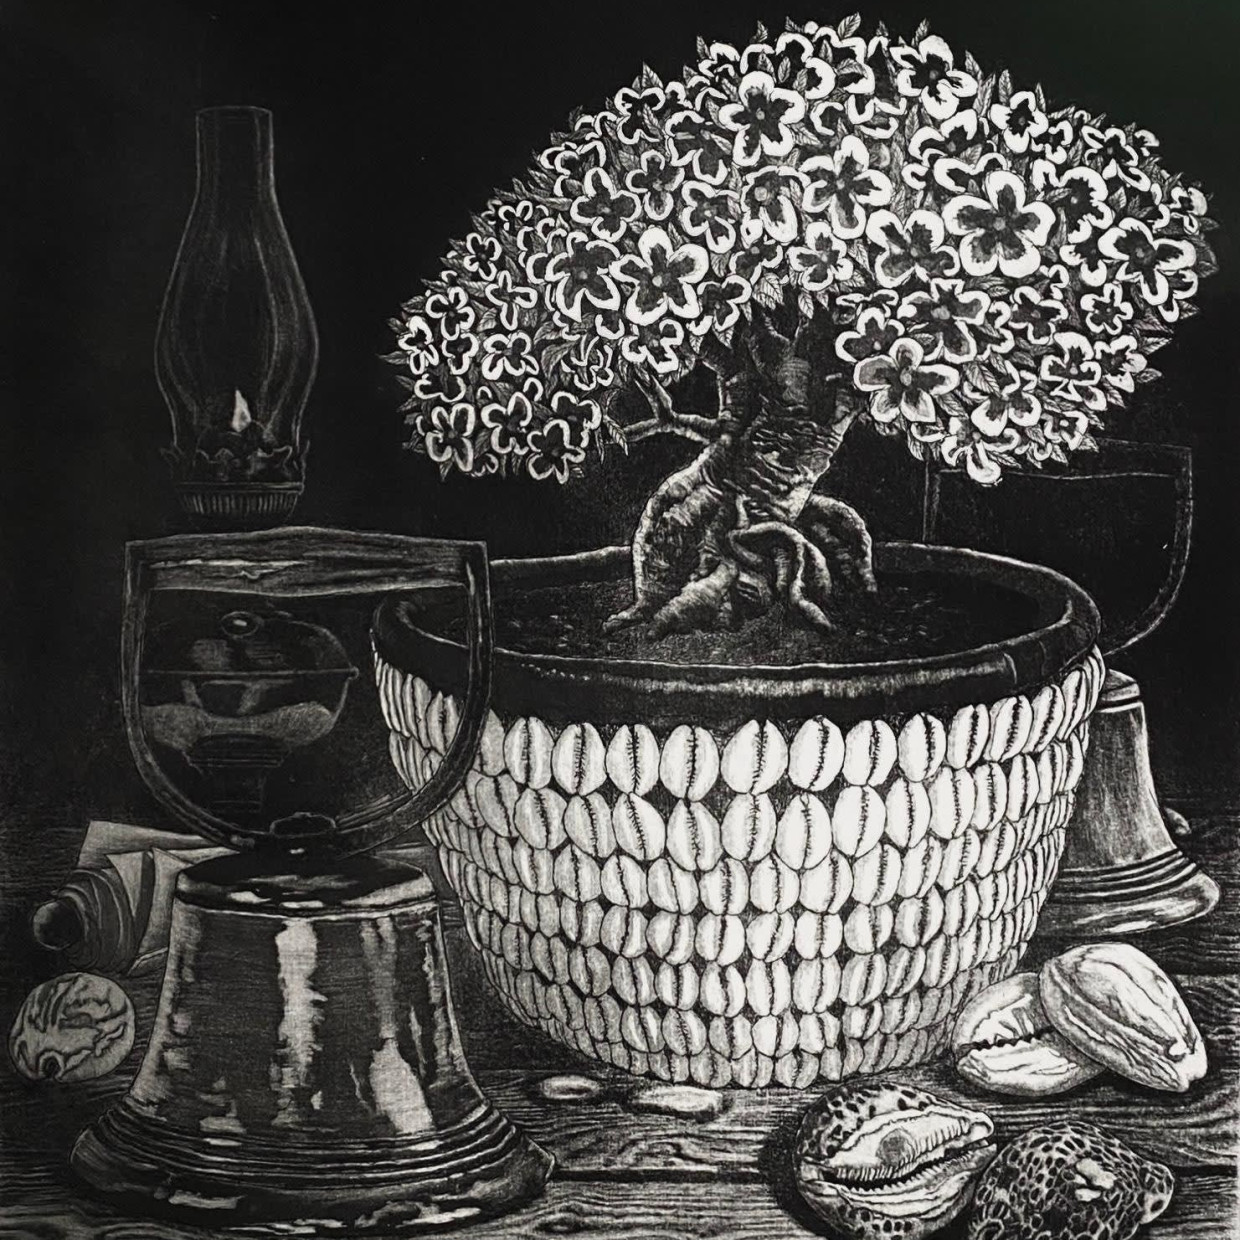 New Work by the RE: Printmakers During Lockdown